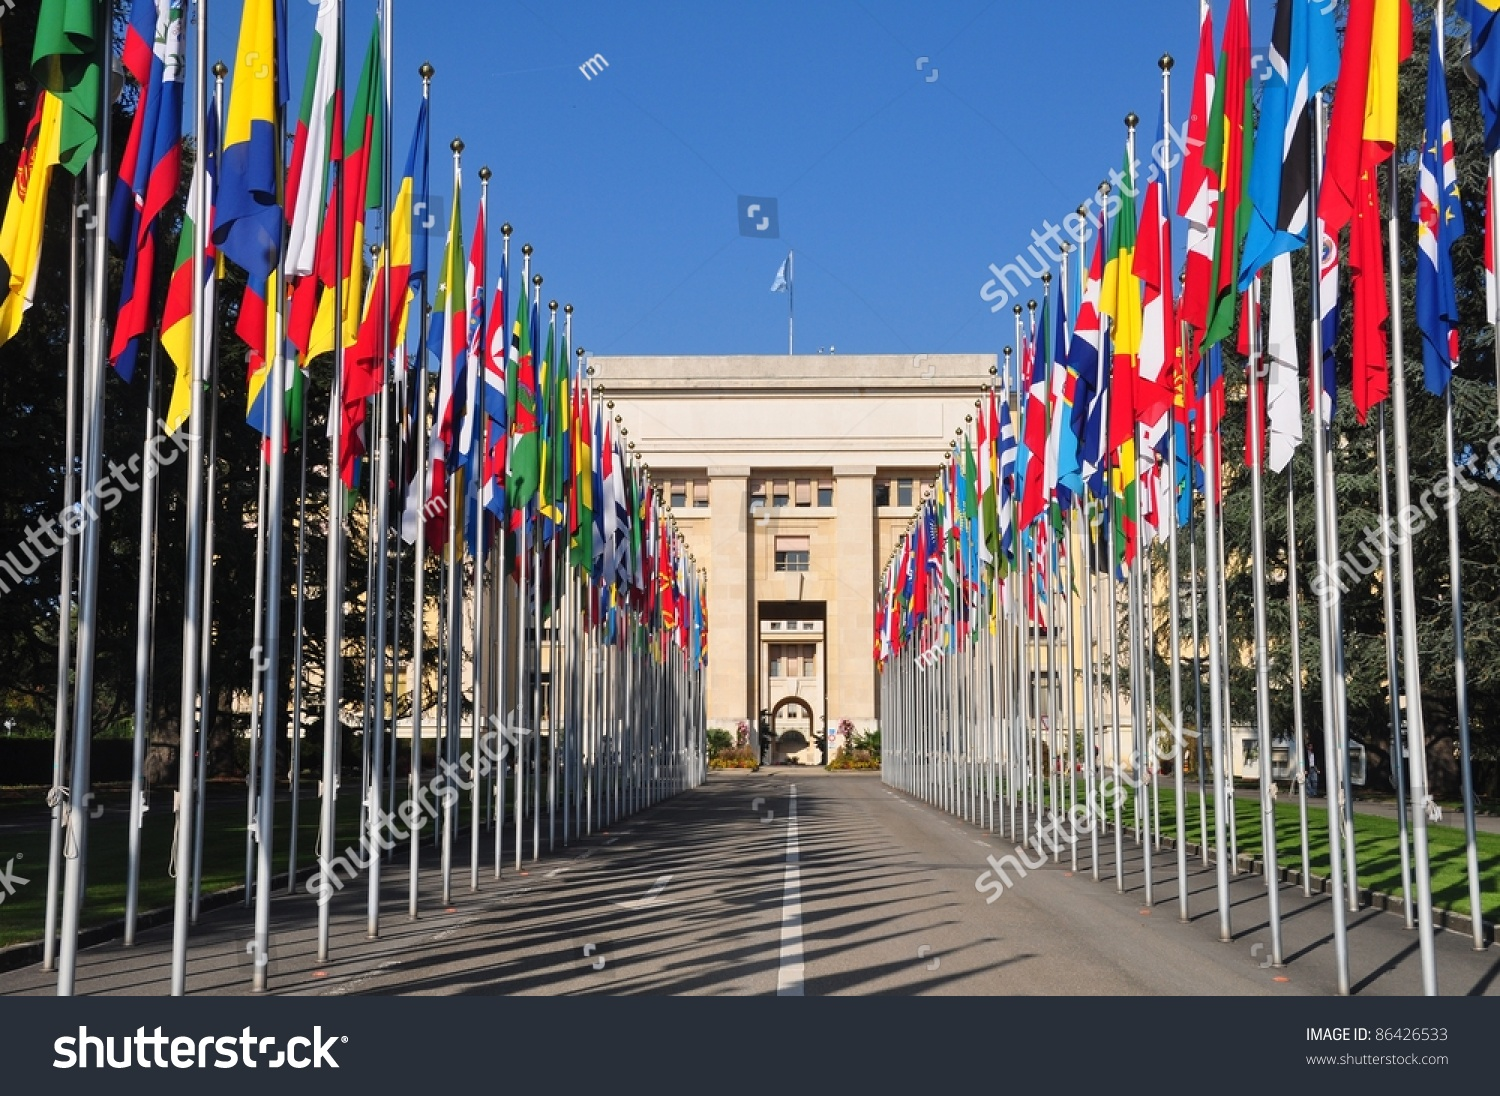 Palais Des Nations United Nations In Geneva Stock Photo 86426533 : Shutterstock